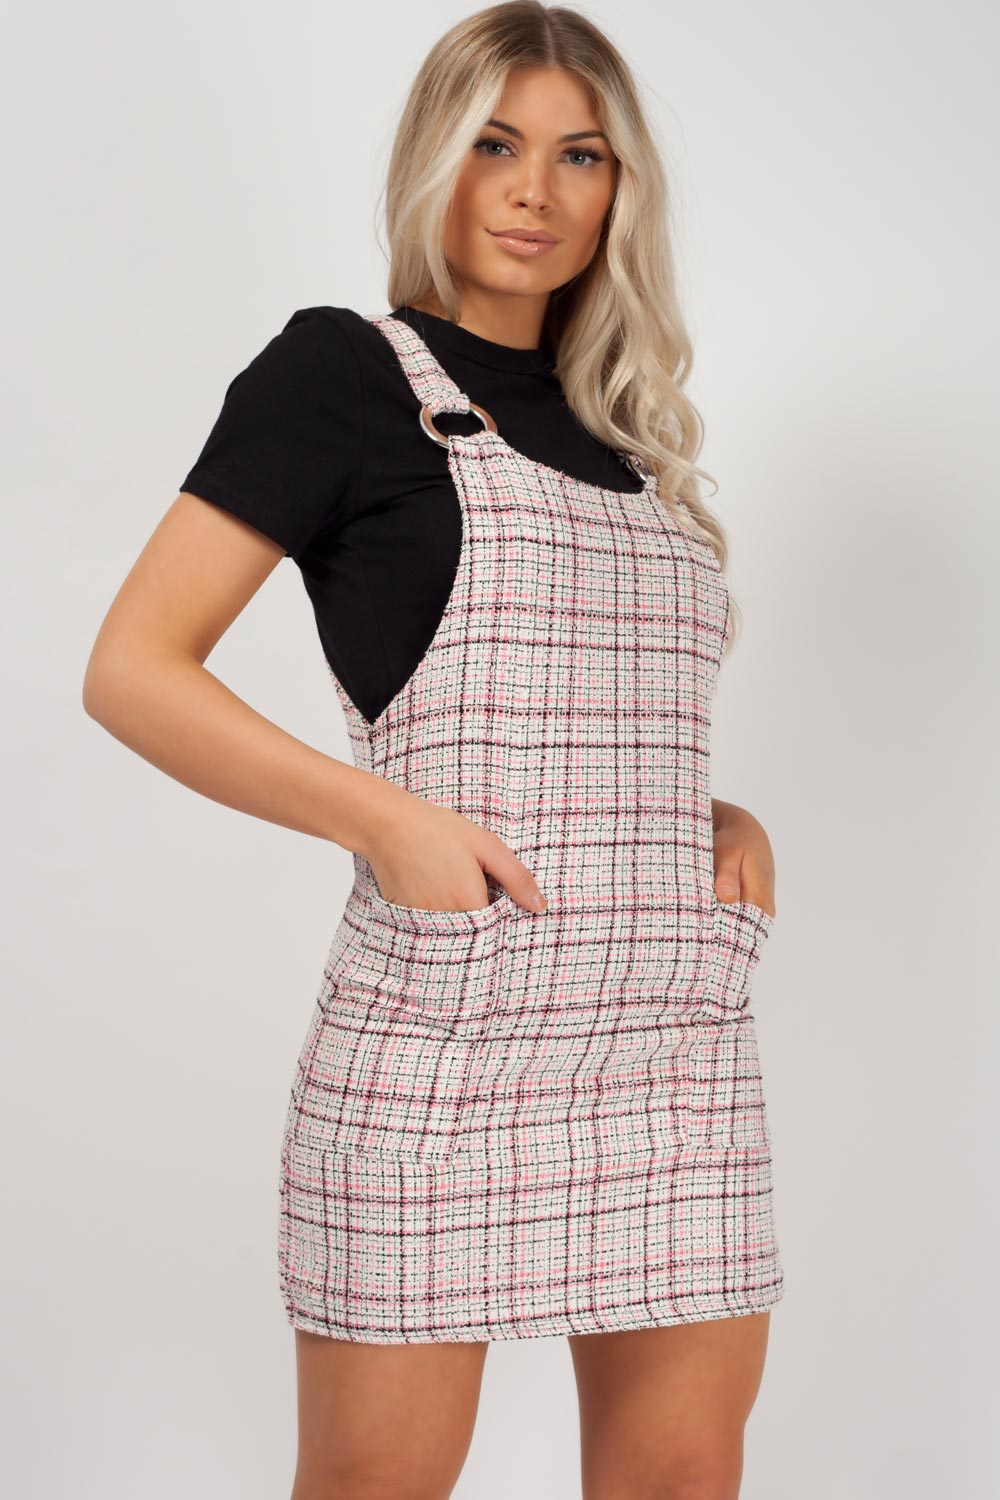 pinafore dress styledup fashion